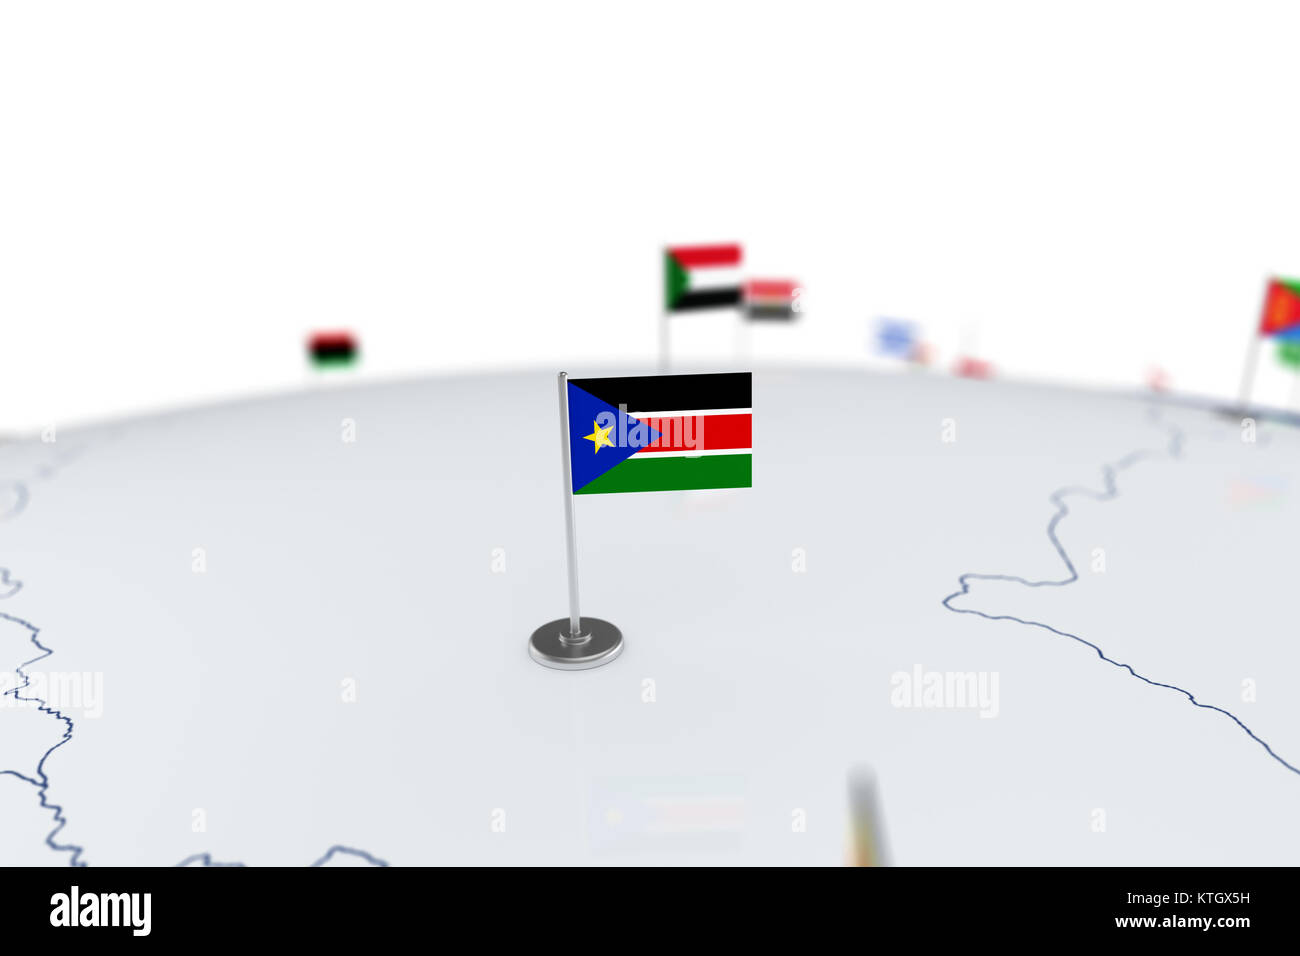 South sudan flag country flag with chrome flagpole on the world south sudan flag country flag with chrome flagpole on the world map with neighbors countries borders 3d illustration rendering flag gumiabroncs Gallery